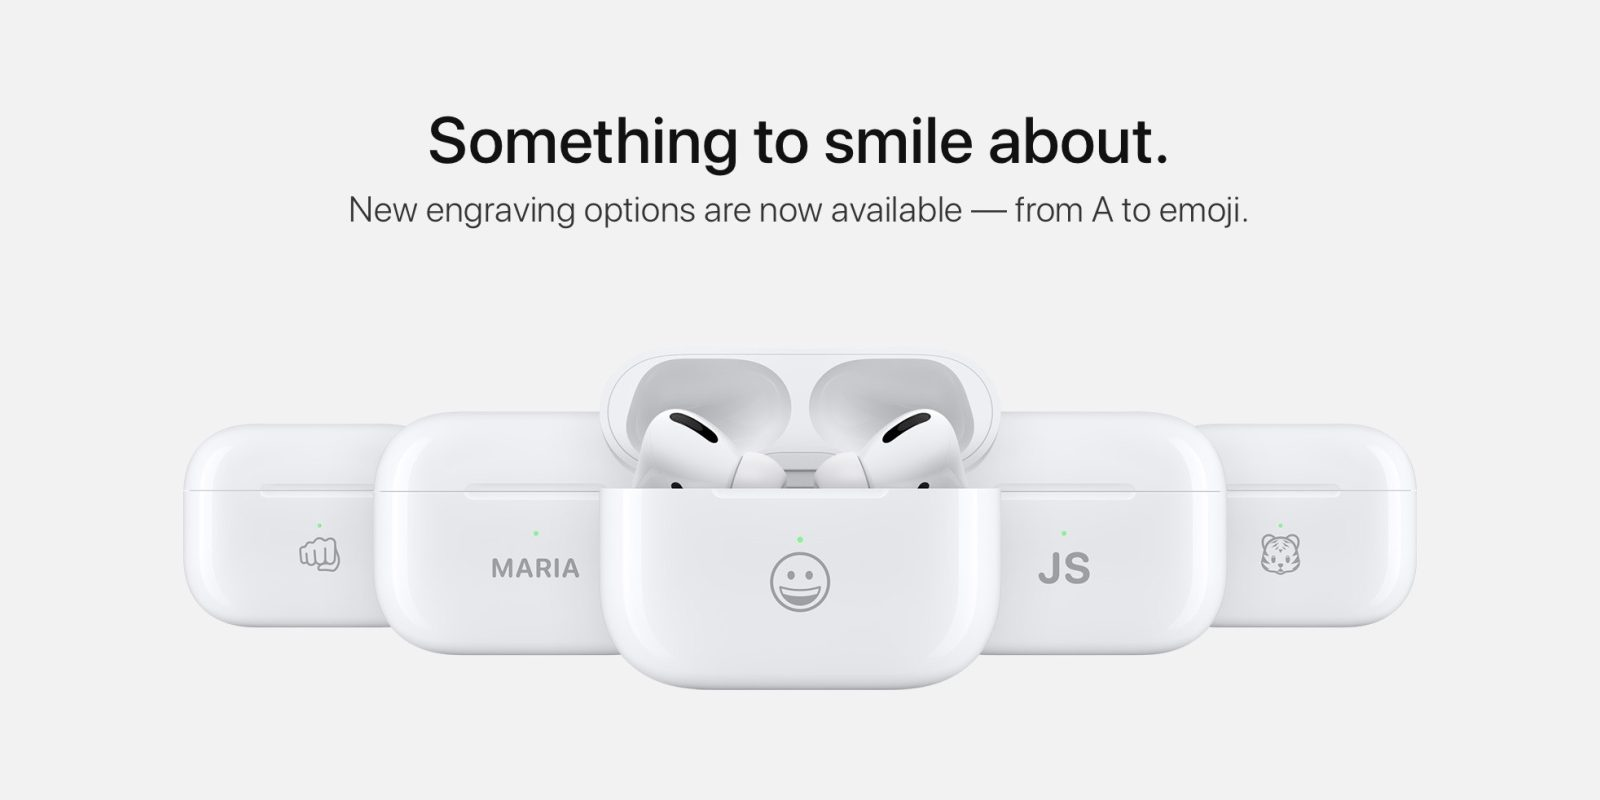 AirPods can now be engraved with select emoji as Apple refreshes exclusive font